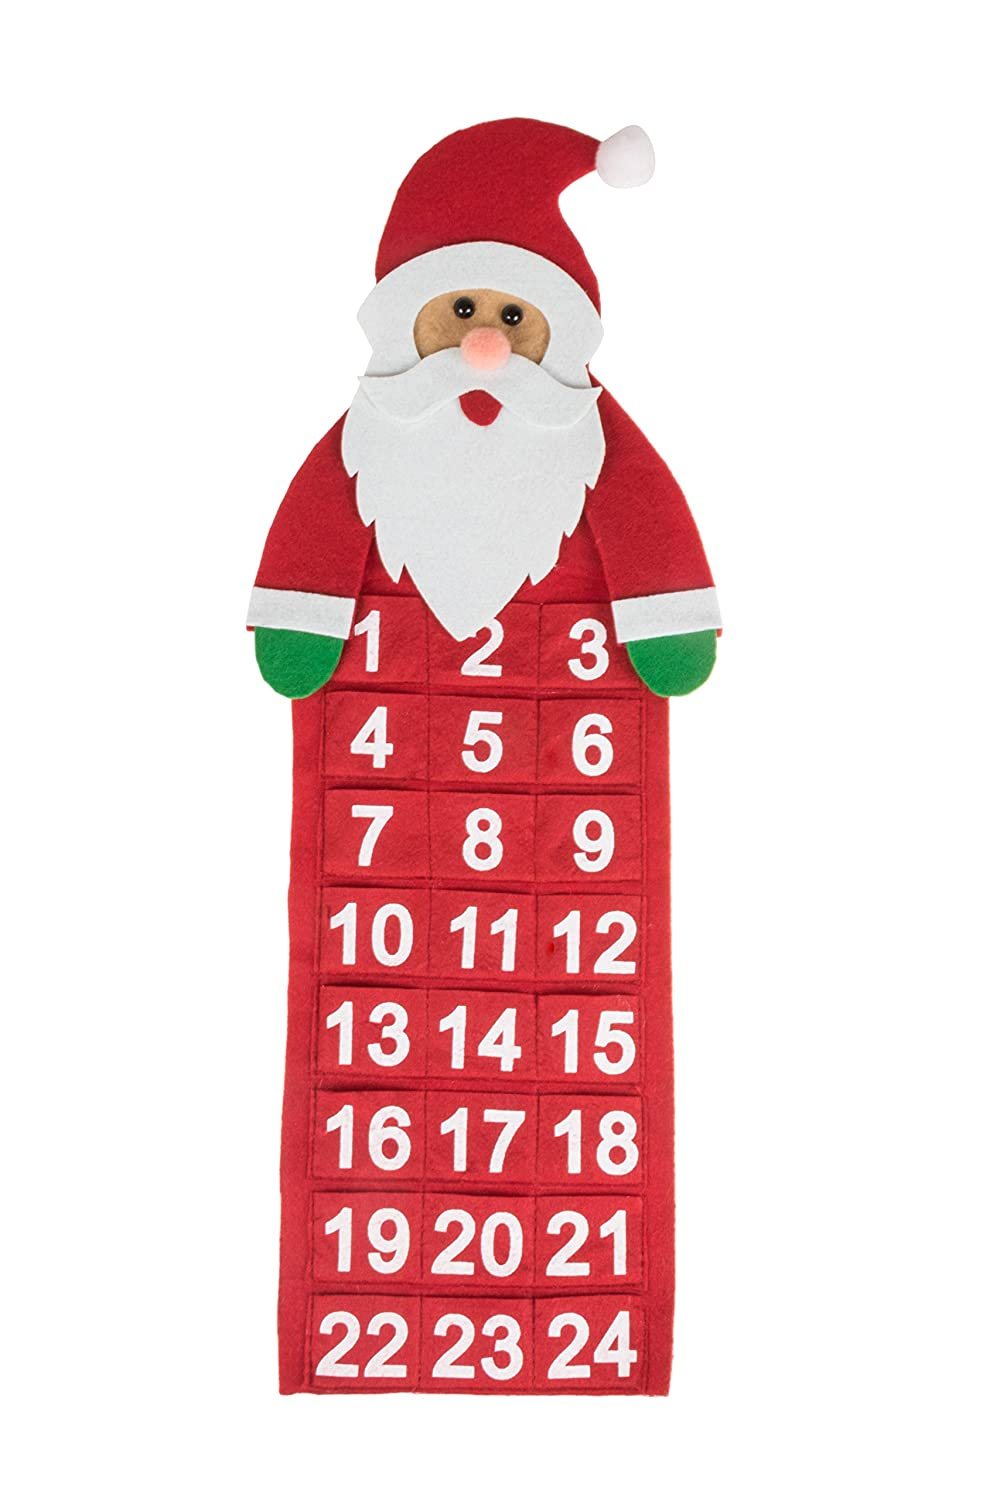 Christmas 24 Day Hanging Cloth Advent Calendar | Red and White Santa Claus' Face Christmas Design | Traditional Holiday Christmas Decor Theme | Perfect for Home or Office | Measures 20